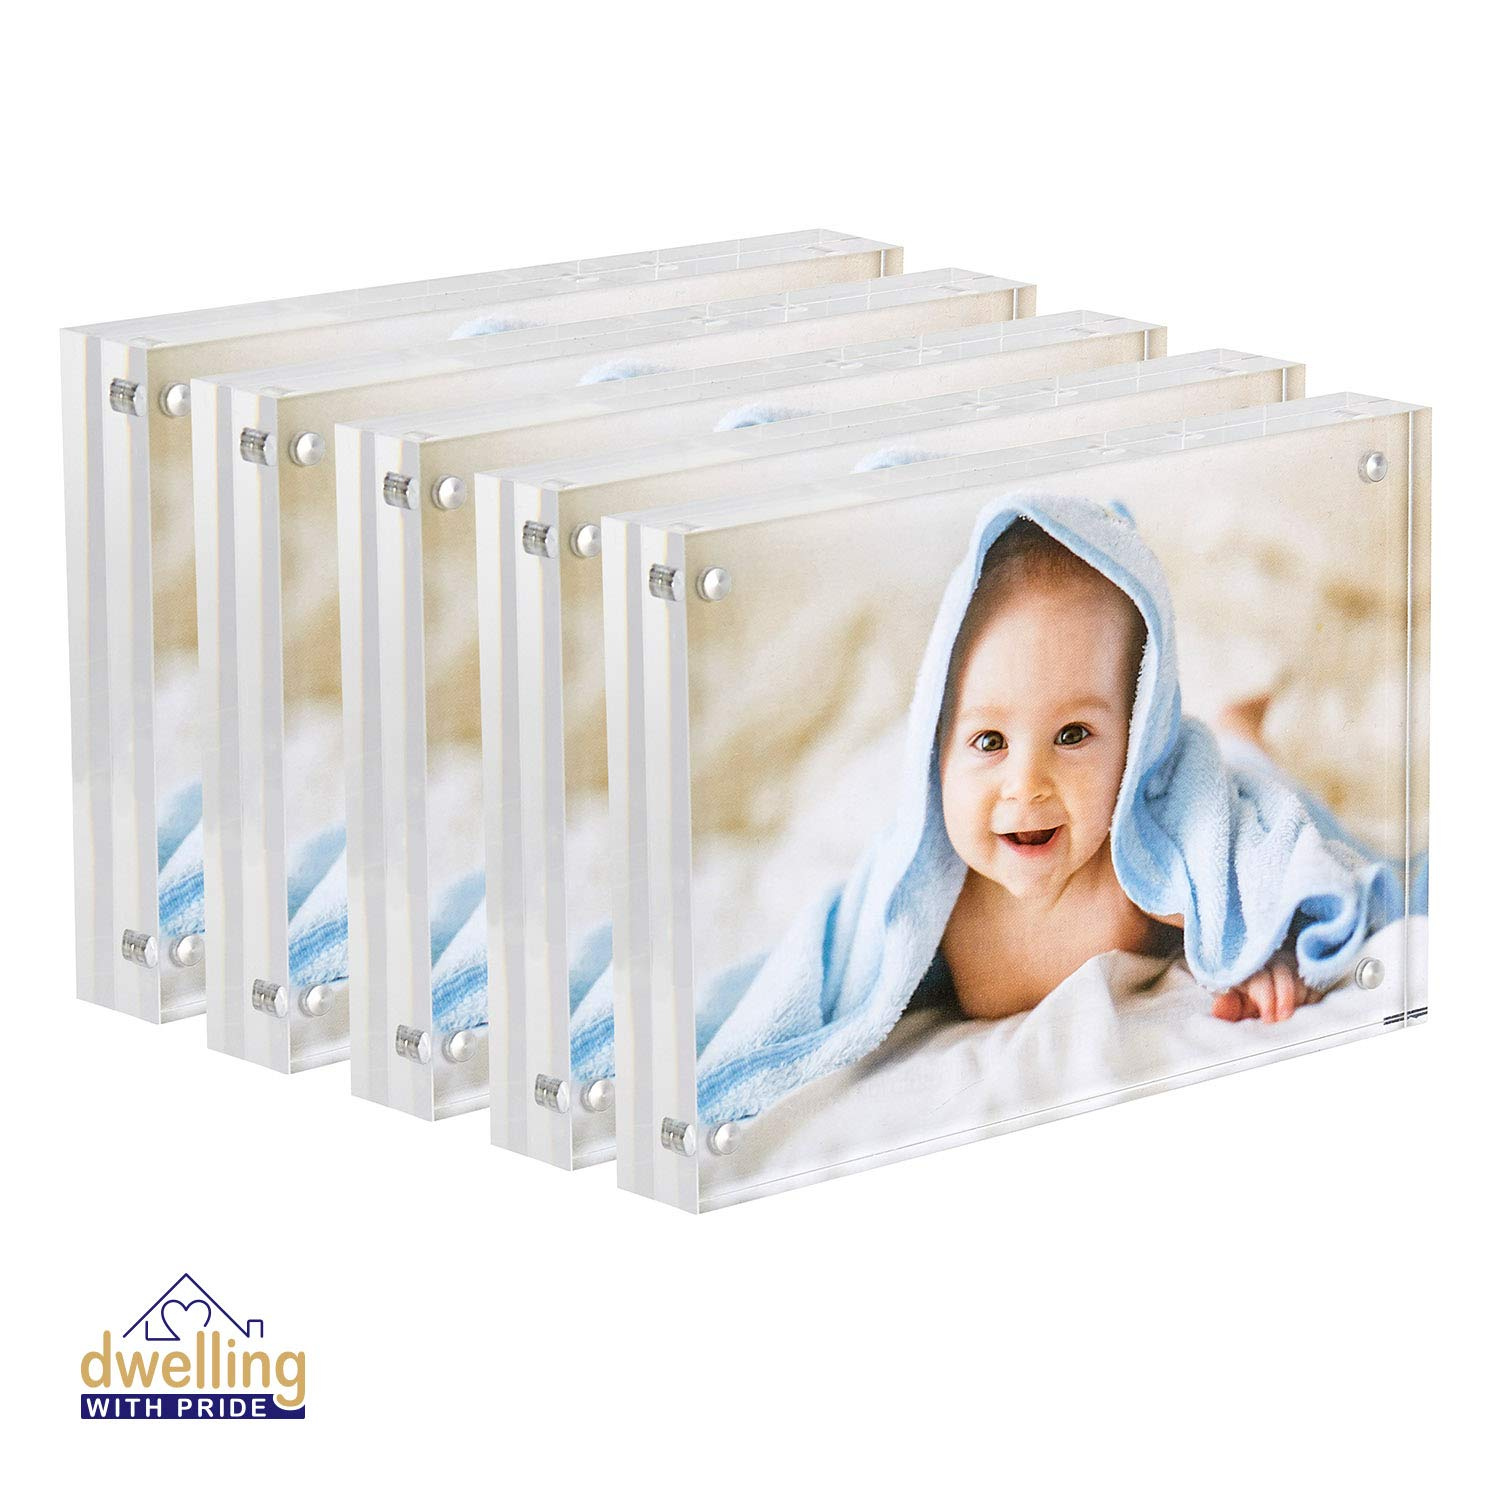 Dwelling With Pride Acrylic Picture Frame Set of 5-4x6 Inch   Magnetic Frame   Collage Stand for Family Photographs   Clear Standing Blocks for Office Desk & Side Table   Wedding Gifts